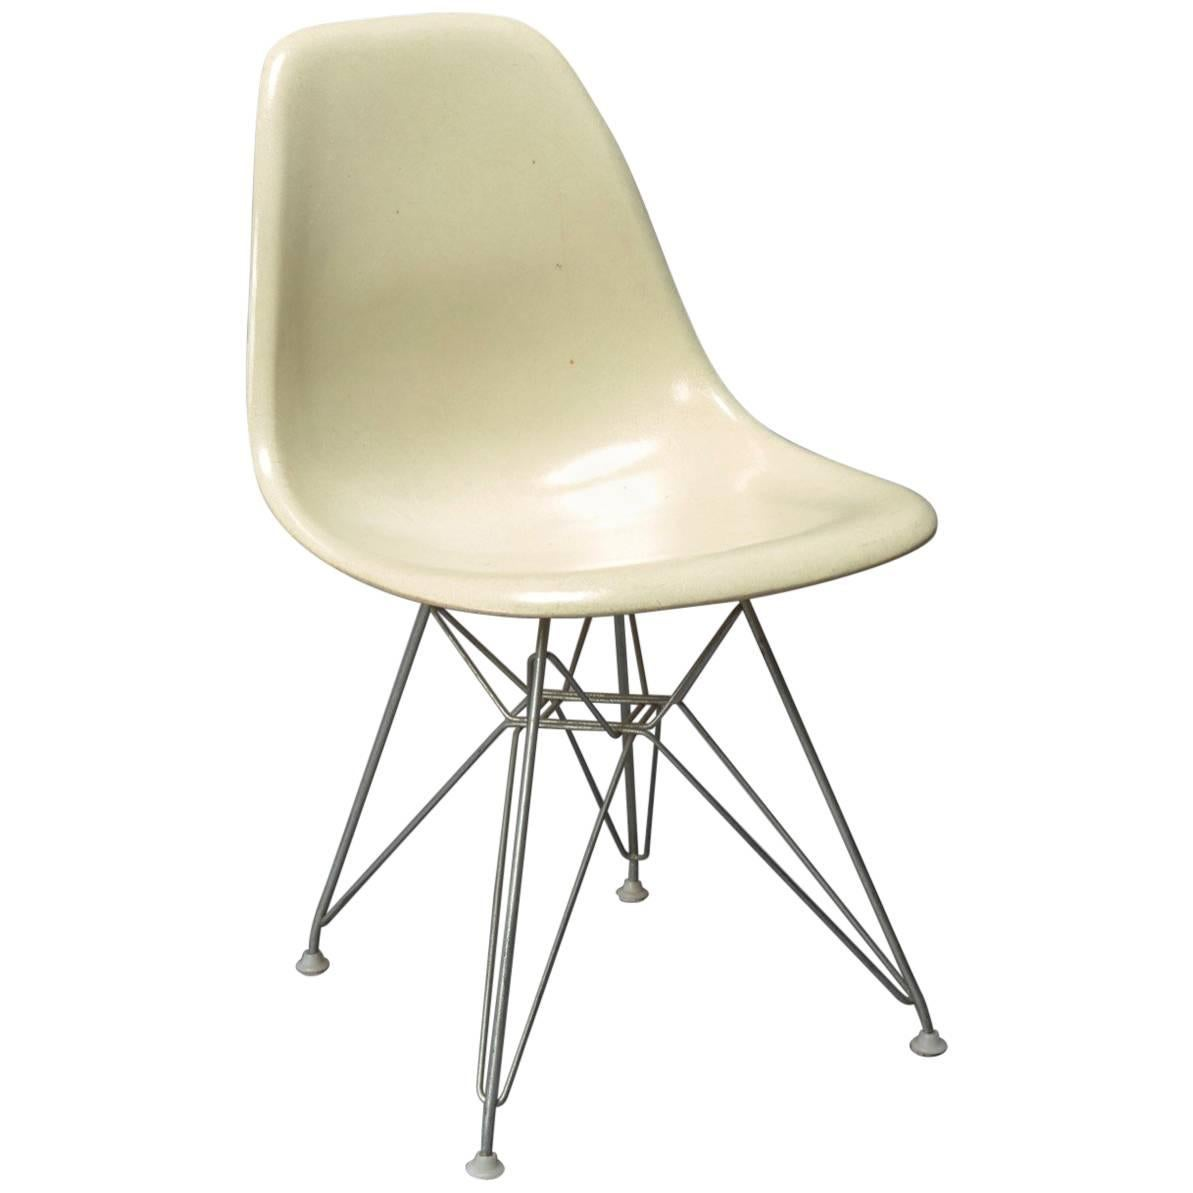 Eames Eiffel Charles Eames Fiberglass Shell Chair For Herman Miller With Original Eiffel Base